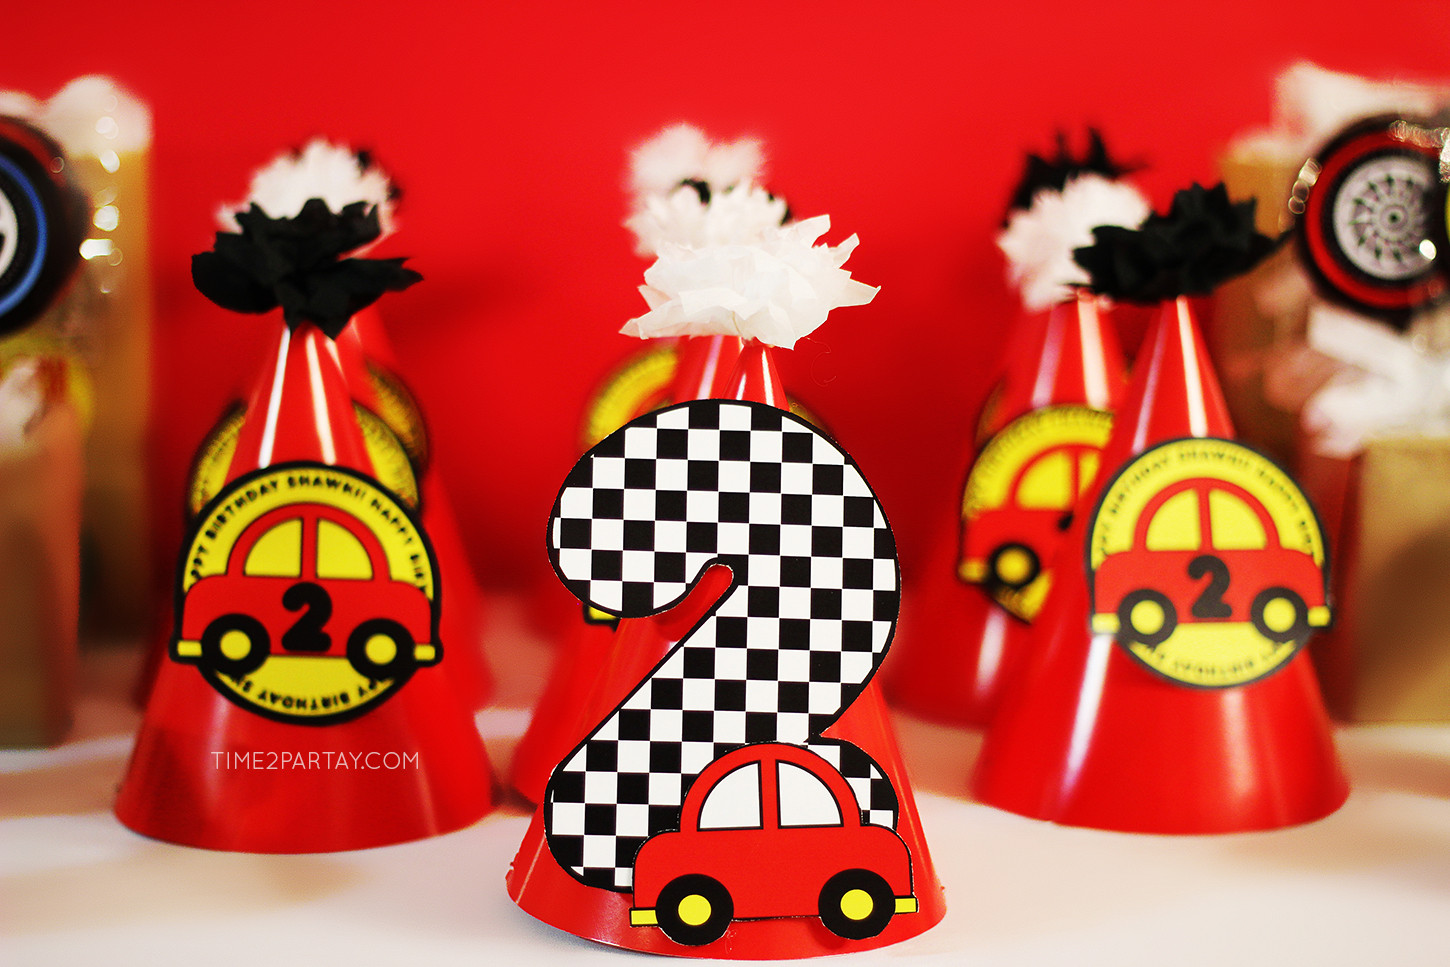 Best ideas about Cars Themed Birthday Party . Save or Pin A Car Themed Birthday Party Now.